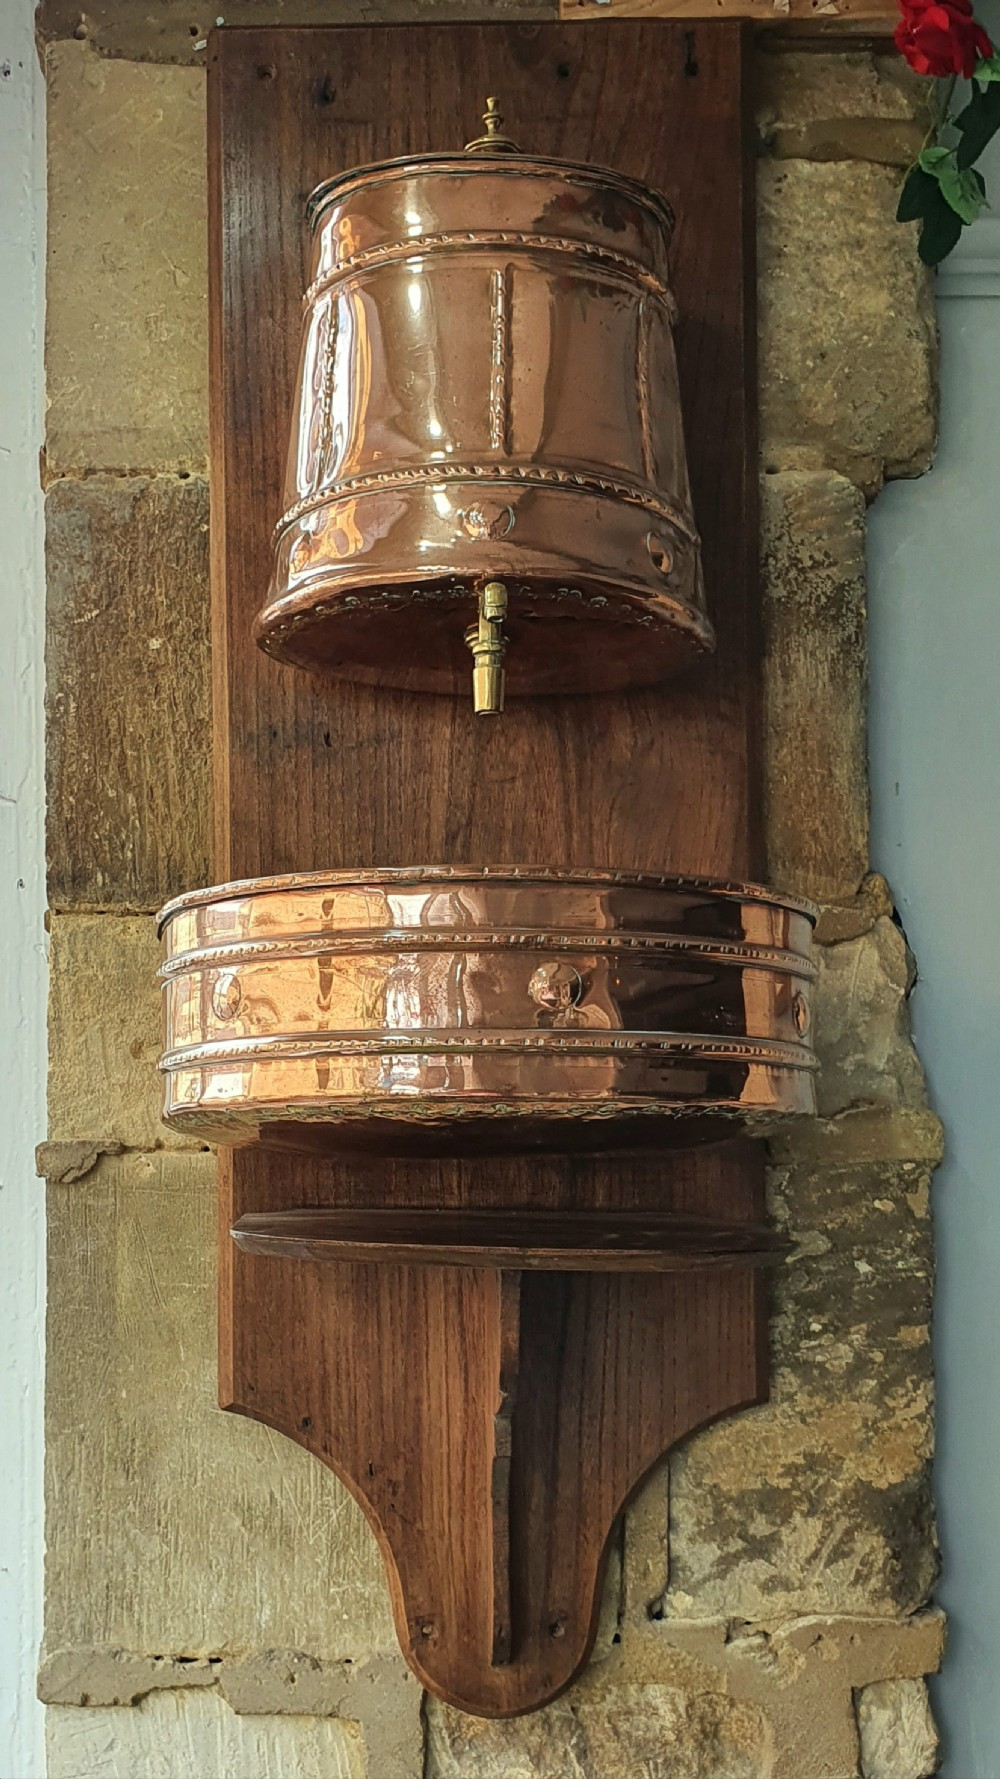 19th century french lavabo water fountain copper with brass mounted on wood